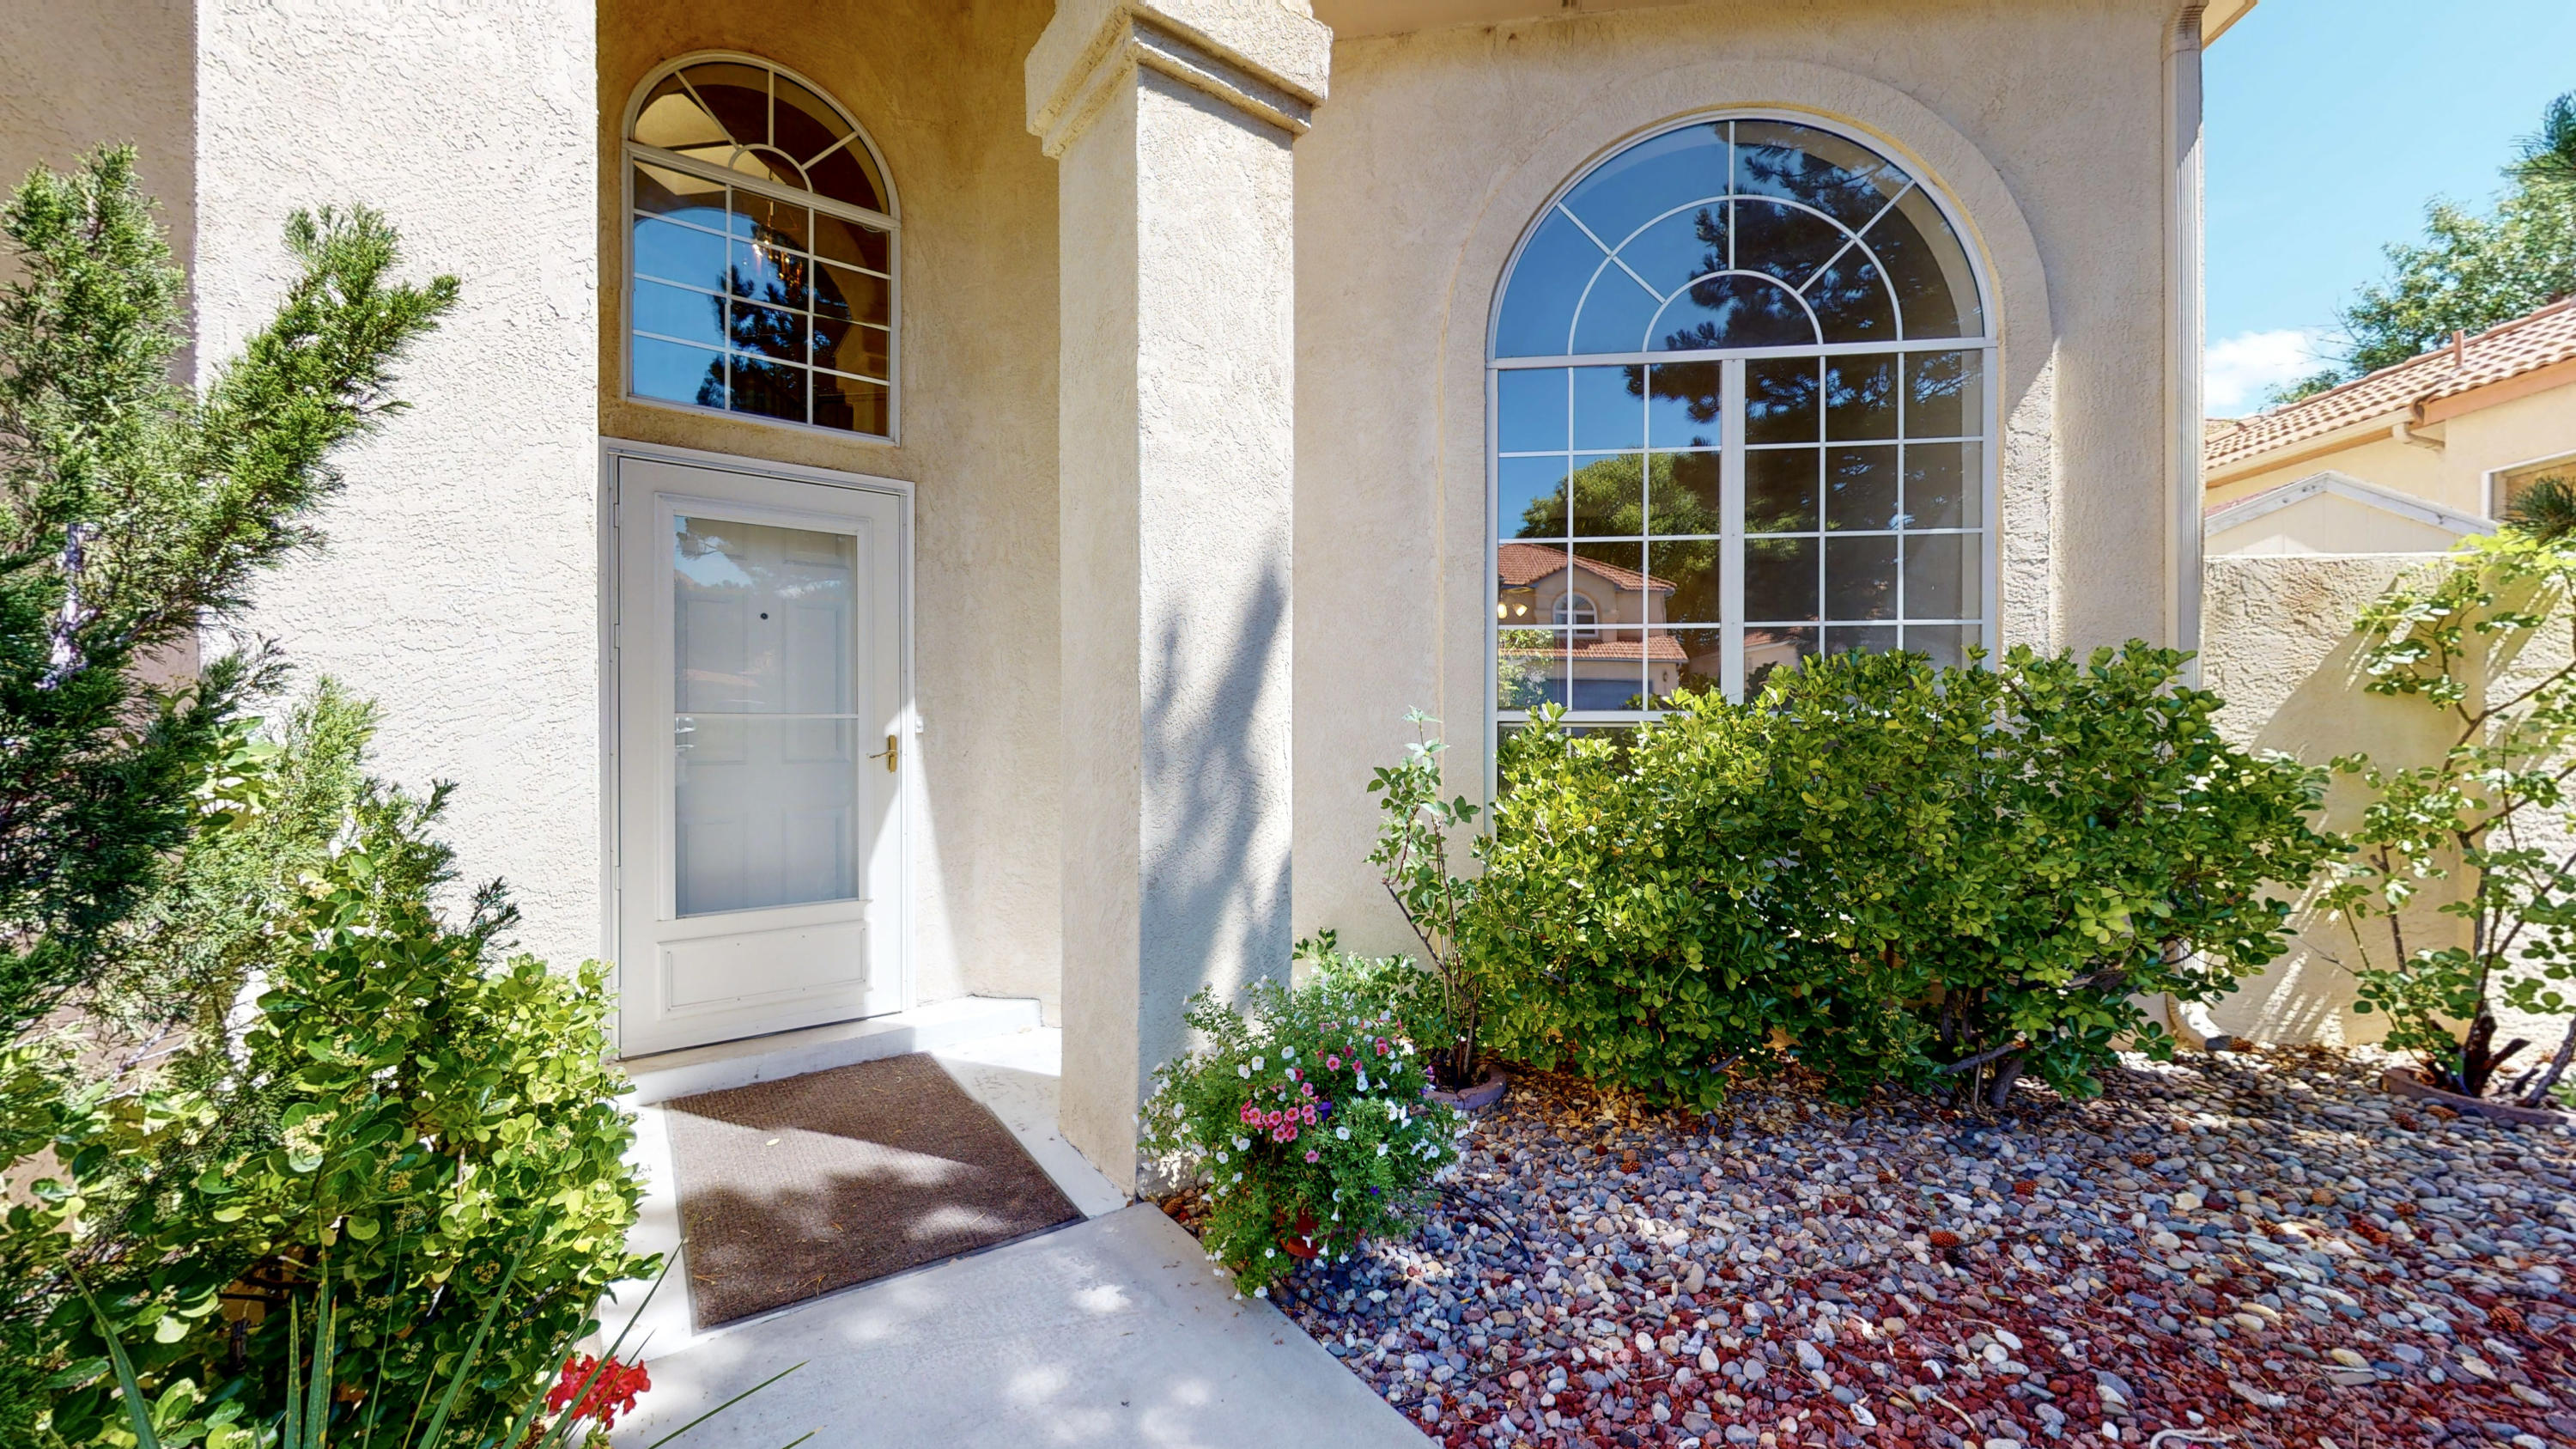 Come check out this spacious sunlit home in the Antelope Run Subdivision!! Wonderful Northeast Heights location, minutes to Tramway or Tanoan. Near grocery  shopping and other amenities . Almost 2800 SF (2792)  efficient floor plan (floor plan attached).  4 bedroom 2.5 bath, with an office downstairs, that could double as a bedroom.  2 refrigerated air units to keep you cool this summer! Make an appointment to see 11901 Ibex today. Homebound? Please see the attached virtual tour to preview!